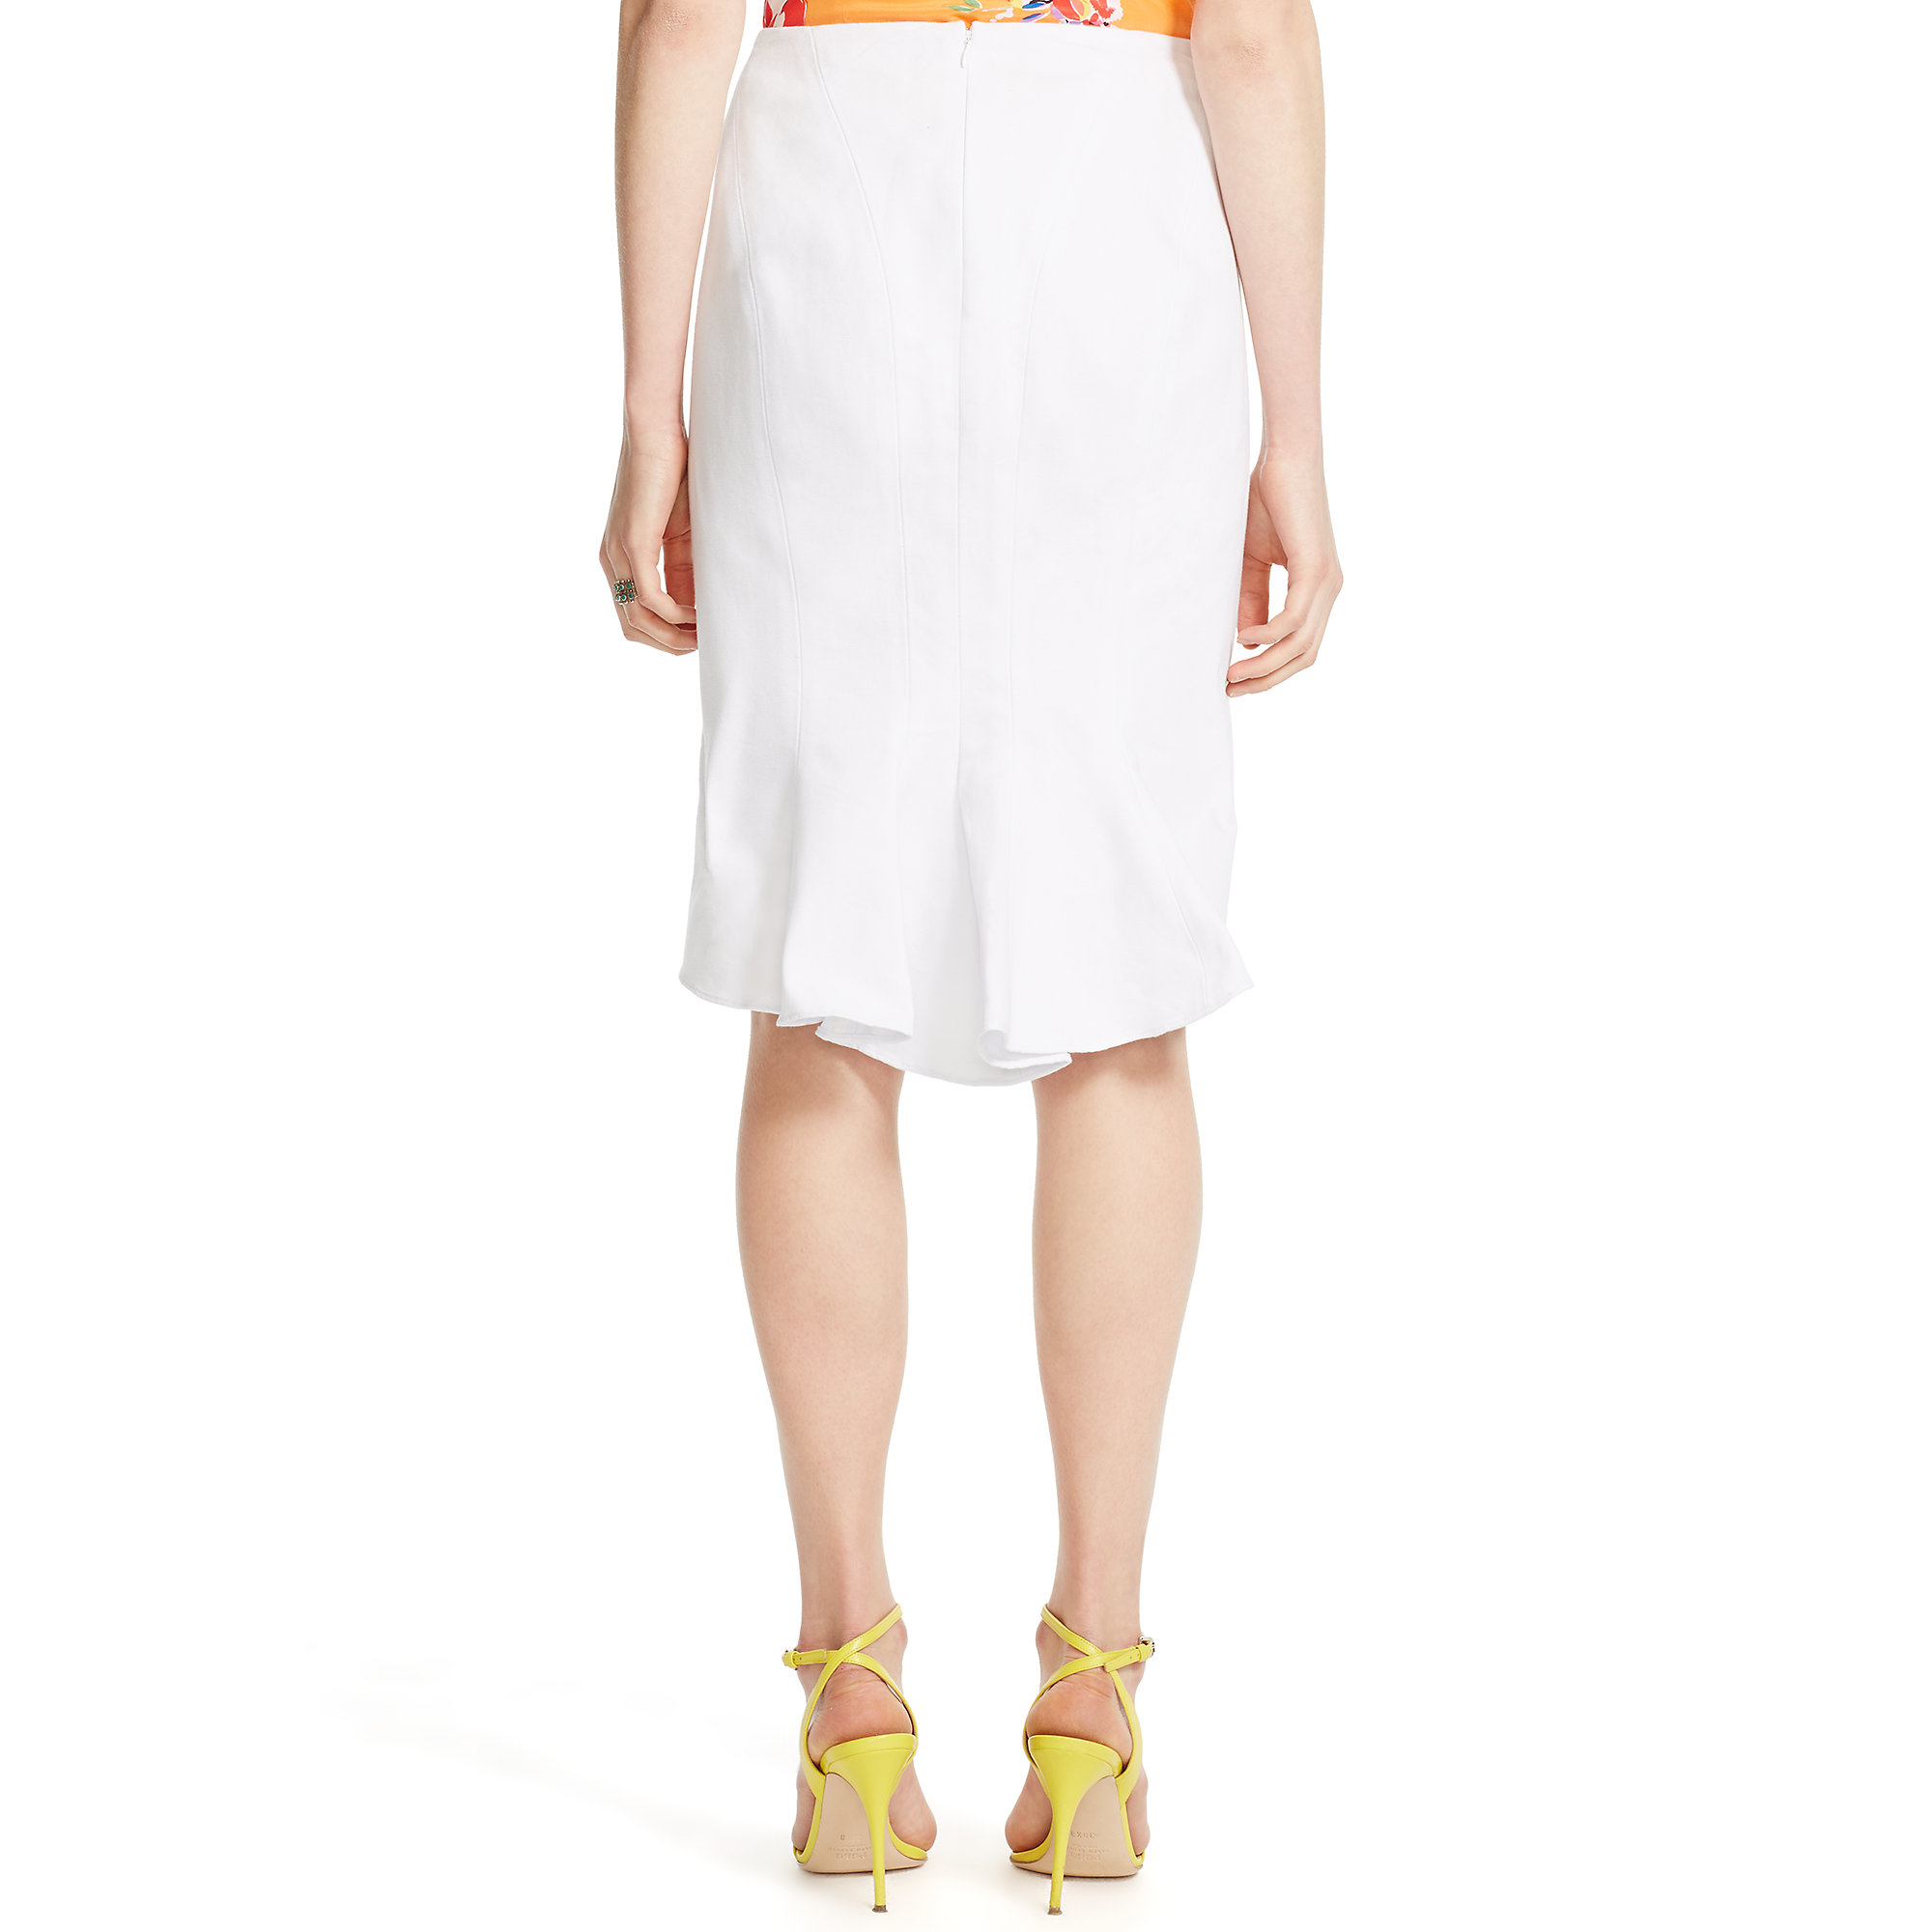 Polo ralph lauren Cotton Fish-tail Pencil Skirt in White | Lyst